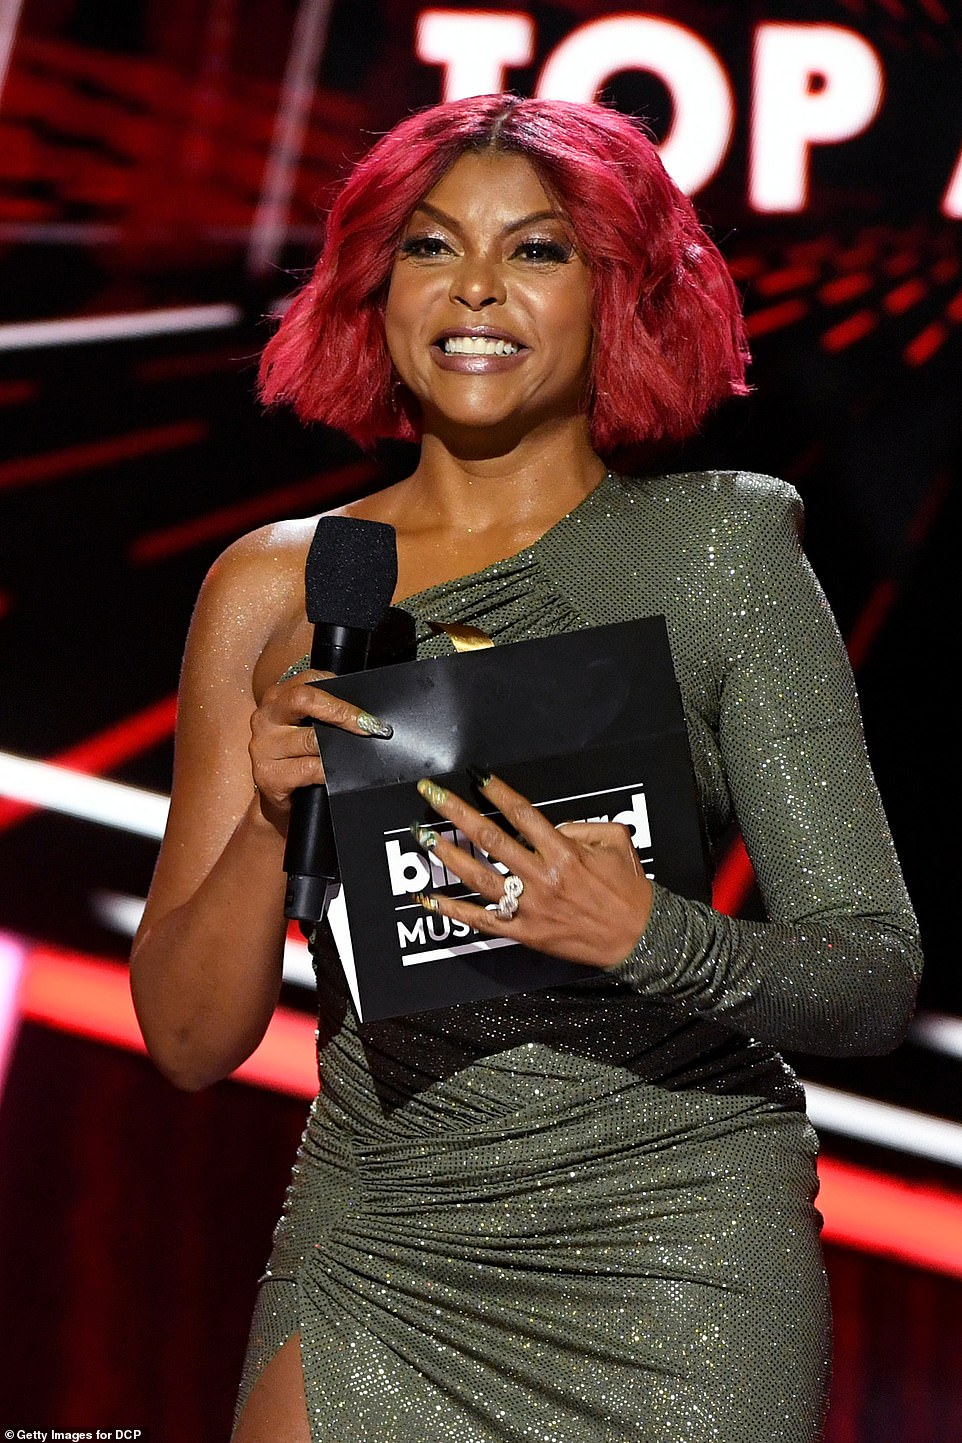 Hello beautiful! Taraji P. Henson worked a glittering number as she presented the award for Top Artist